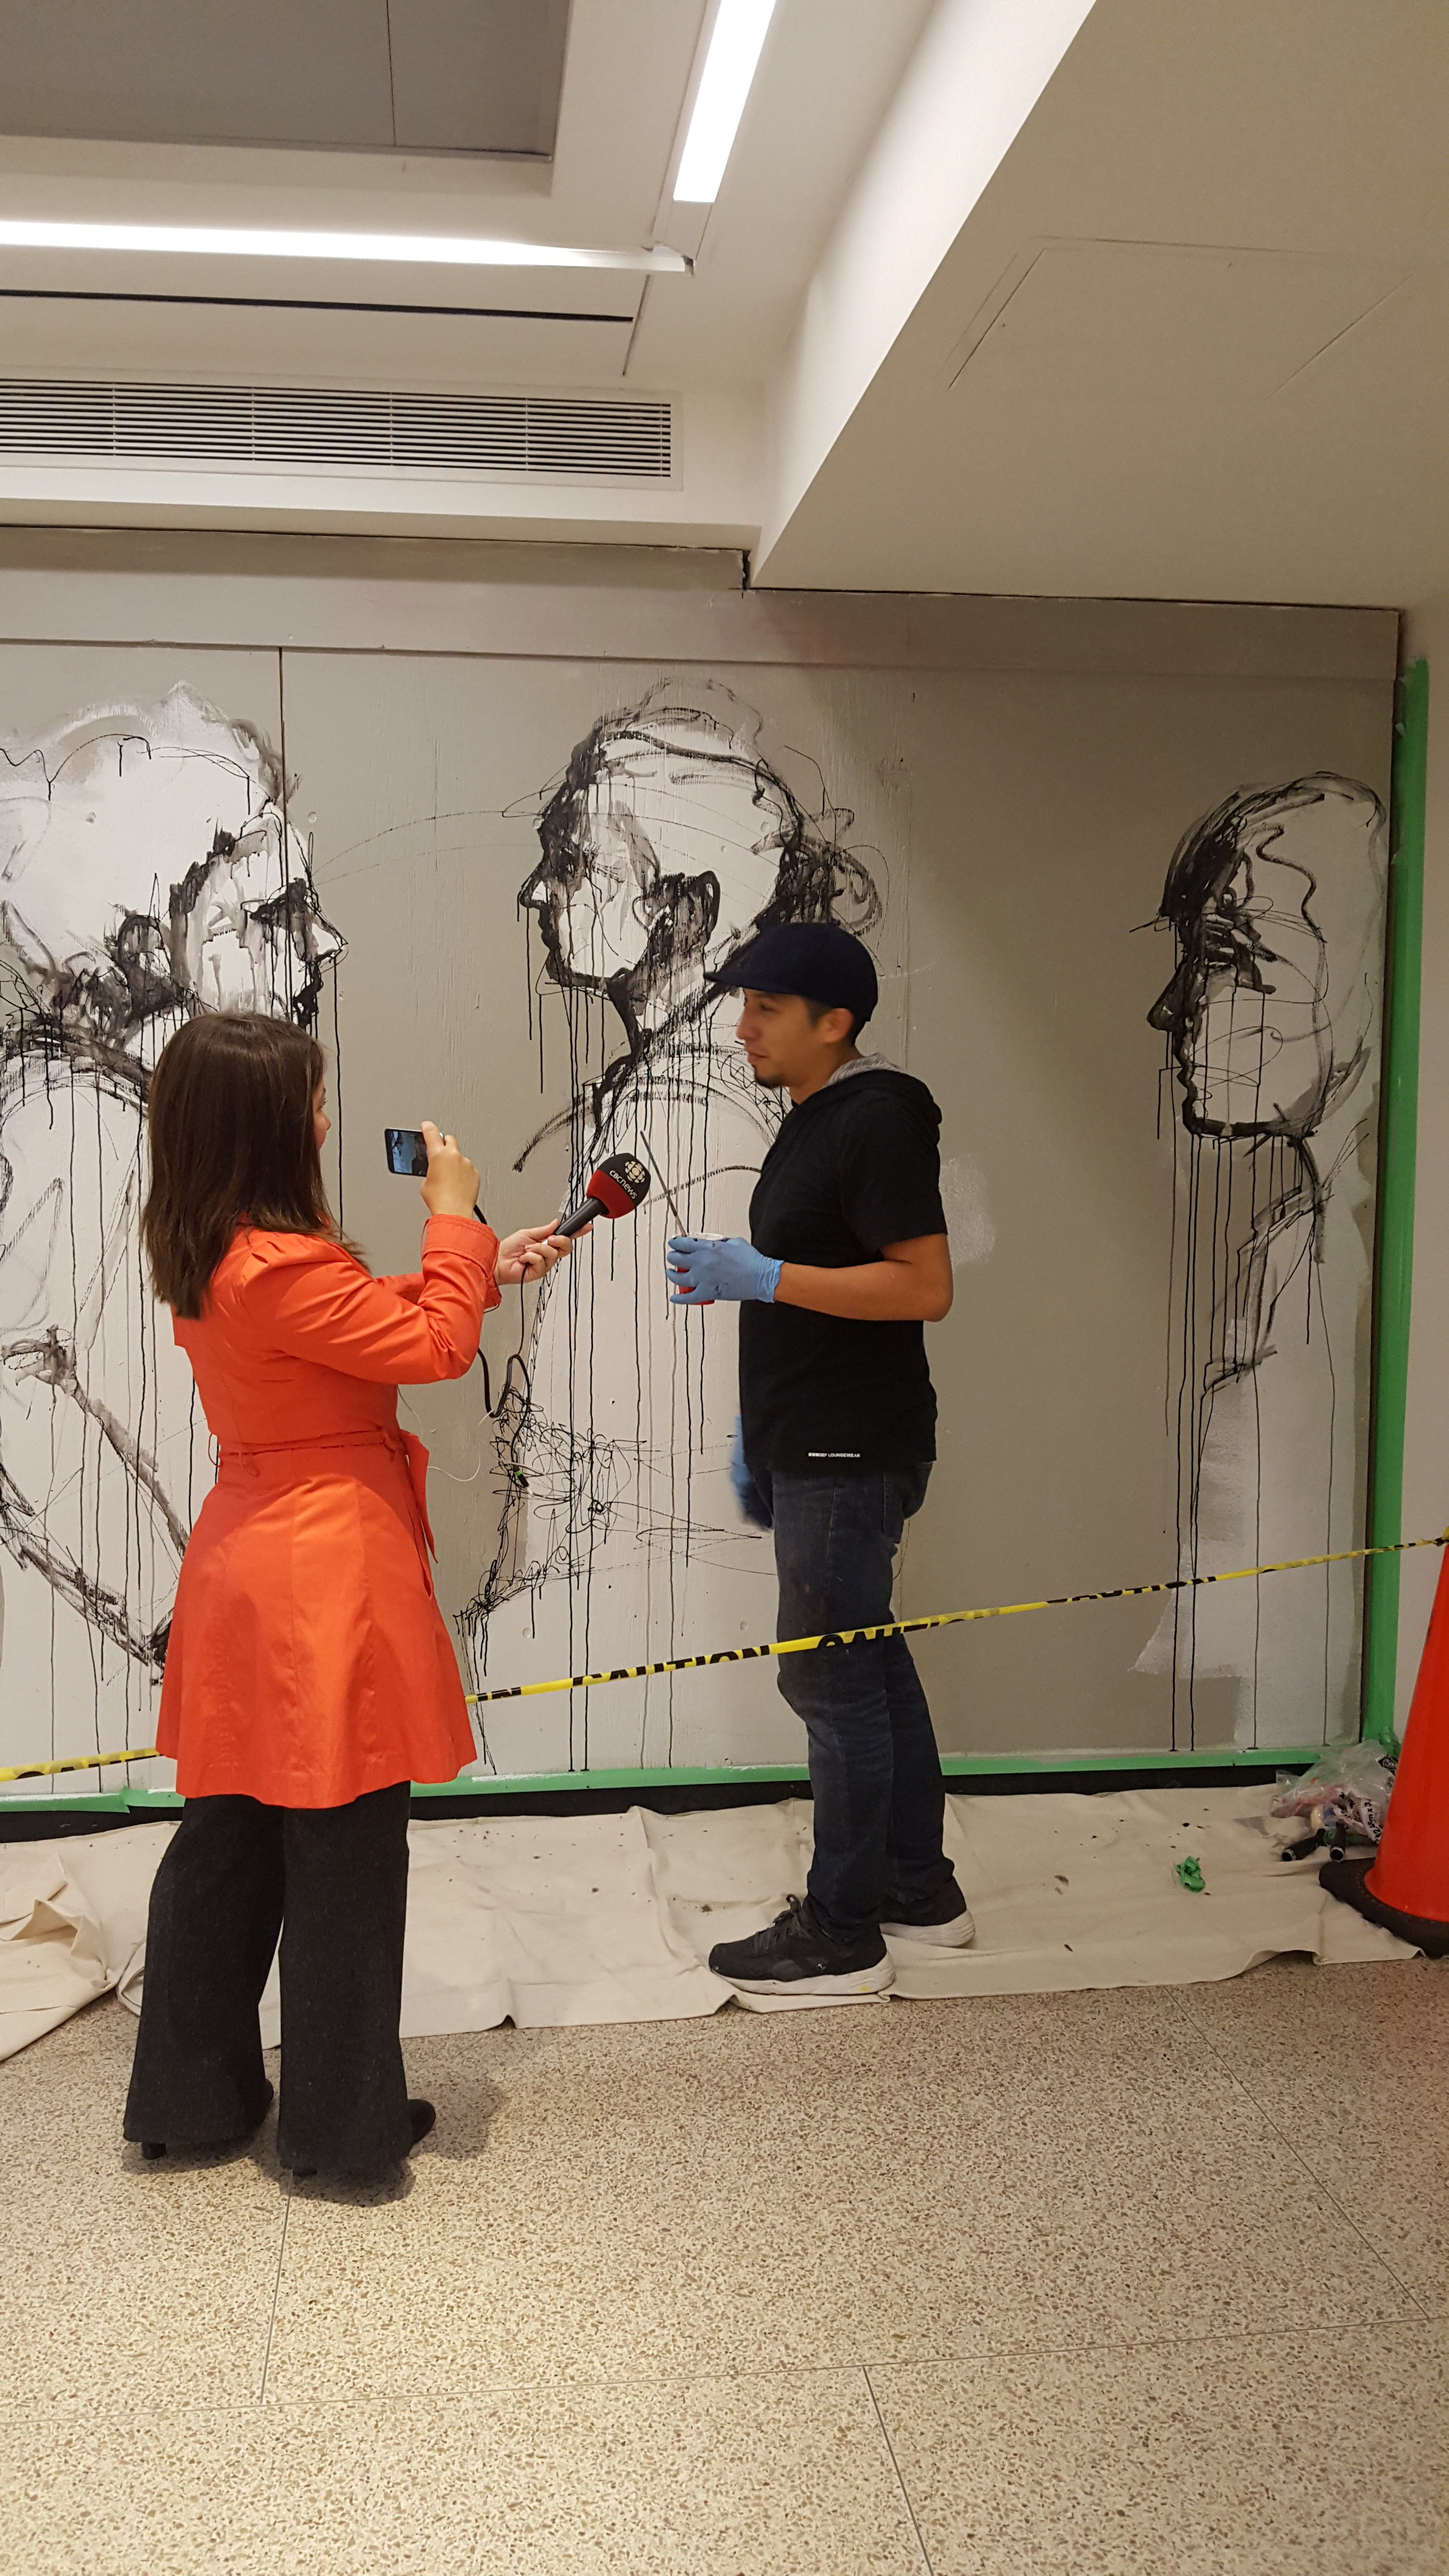 Carlos Delgado being interviewed by CBC News for live painting of mural in Union Station, Toronto